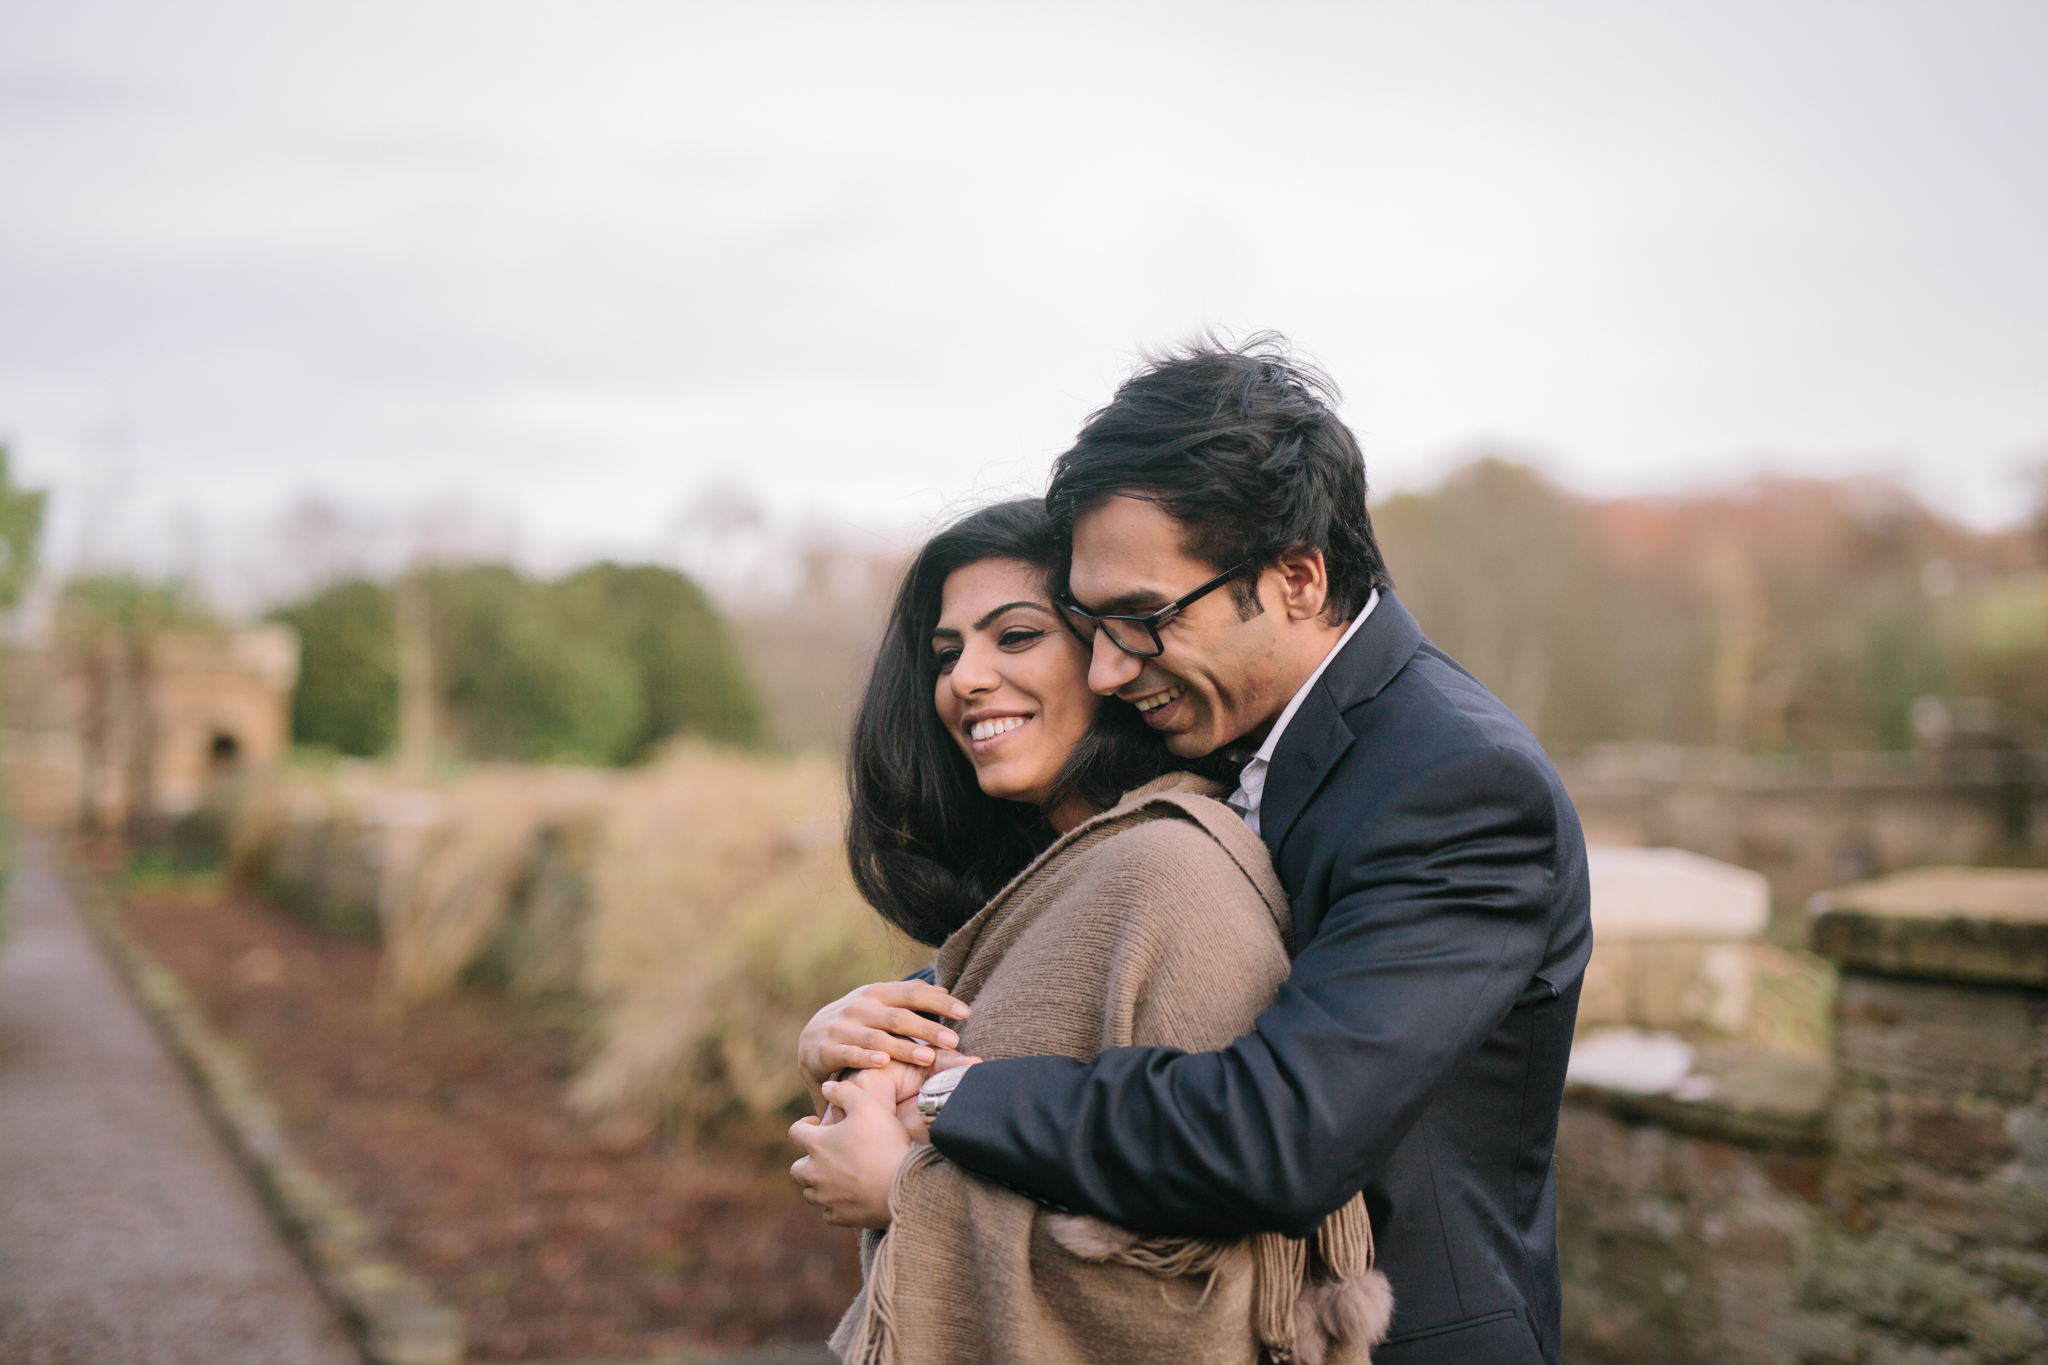 suzanne_li_photography_culzean_castle_wedding_proposal-143.jpg